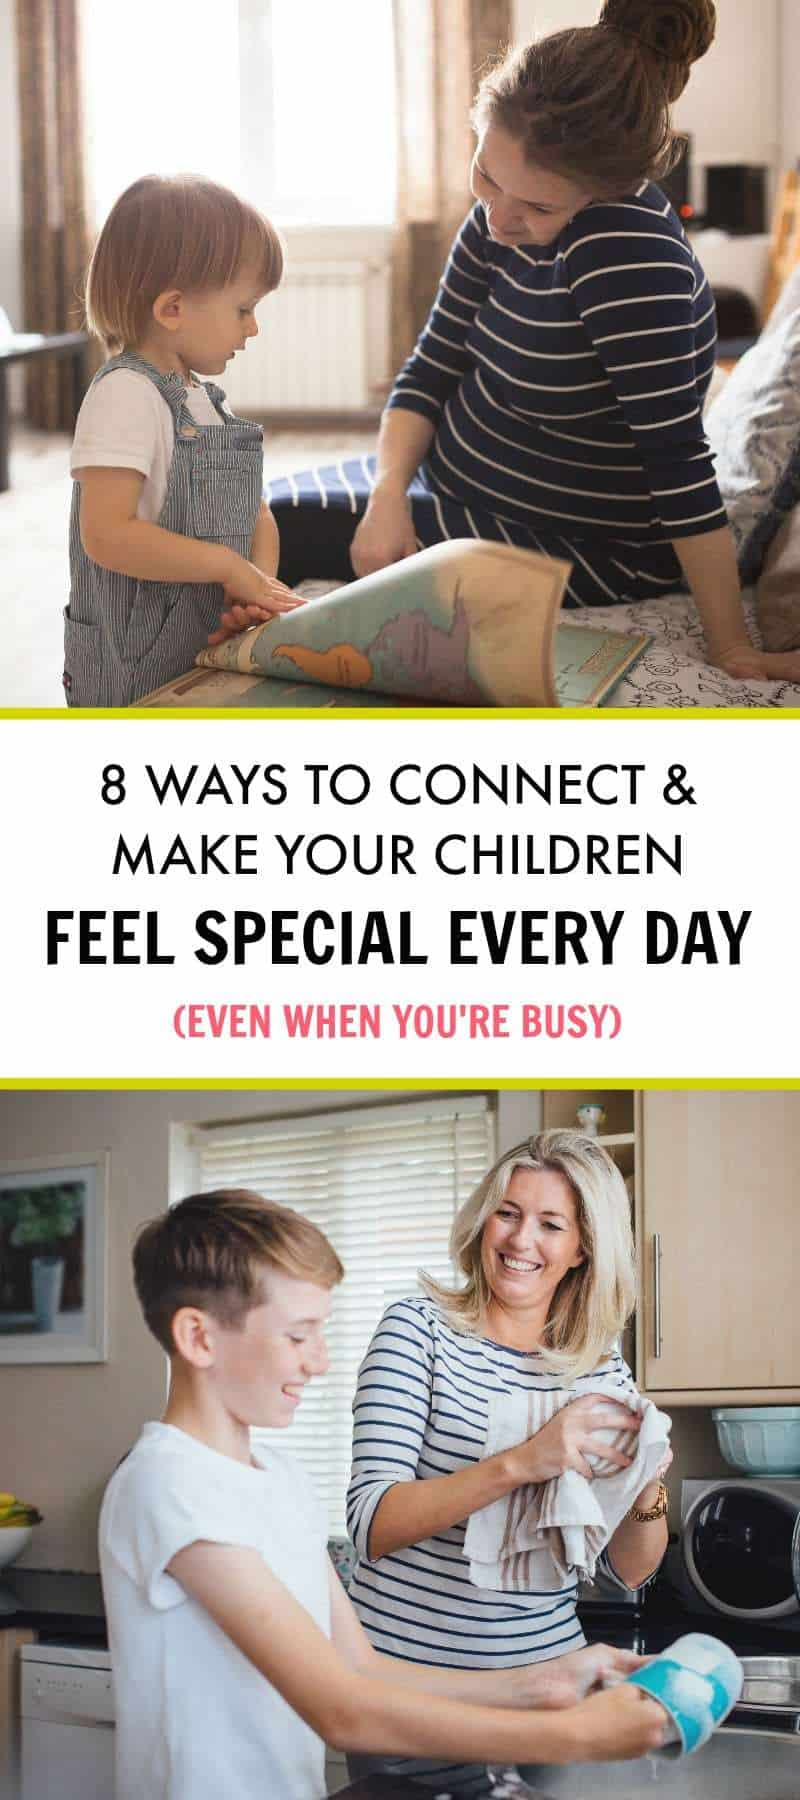 8 Easy Ways to Make Your Kids Feel Special Every Day – Even When You're Busy